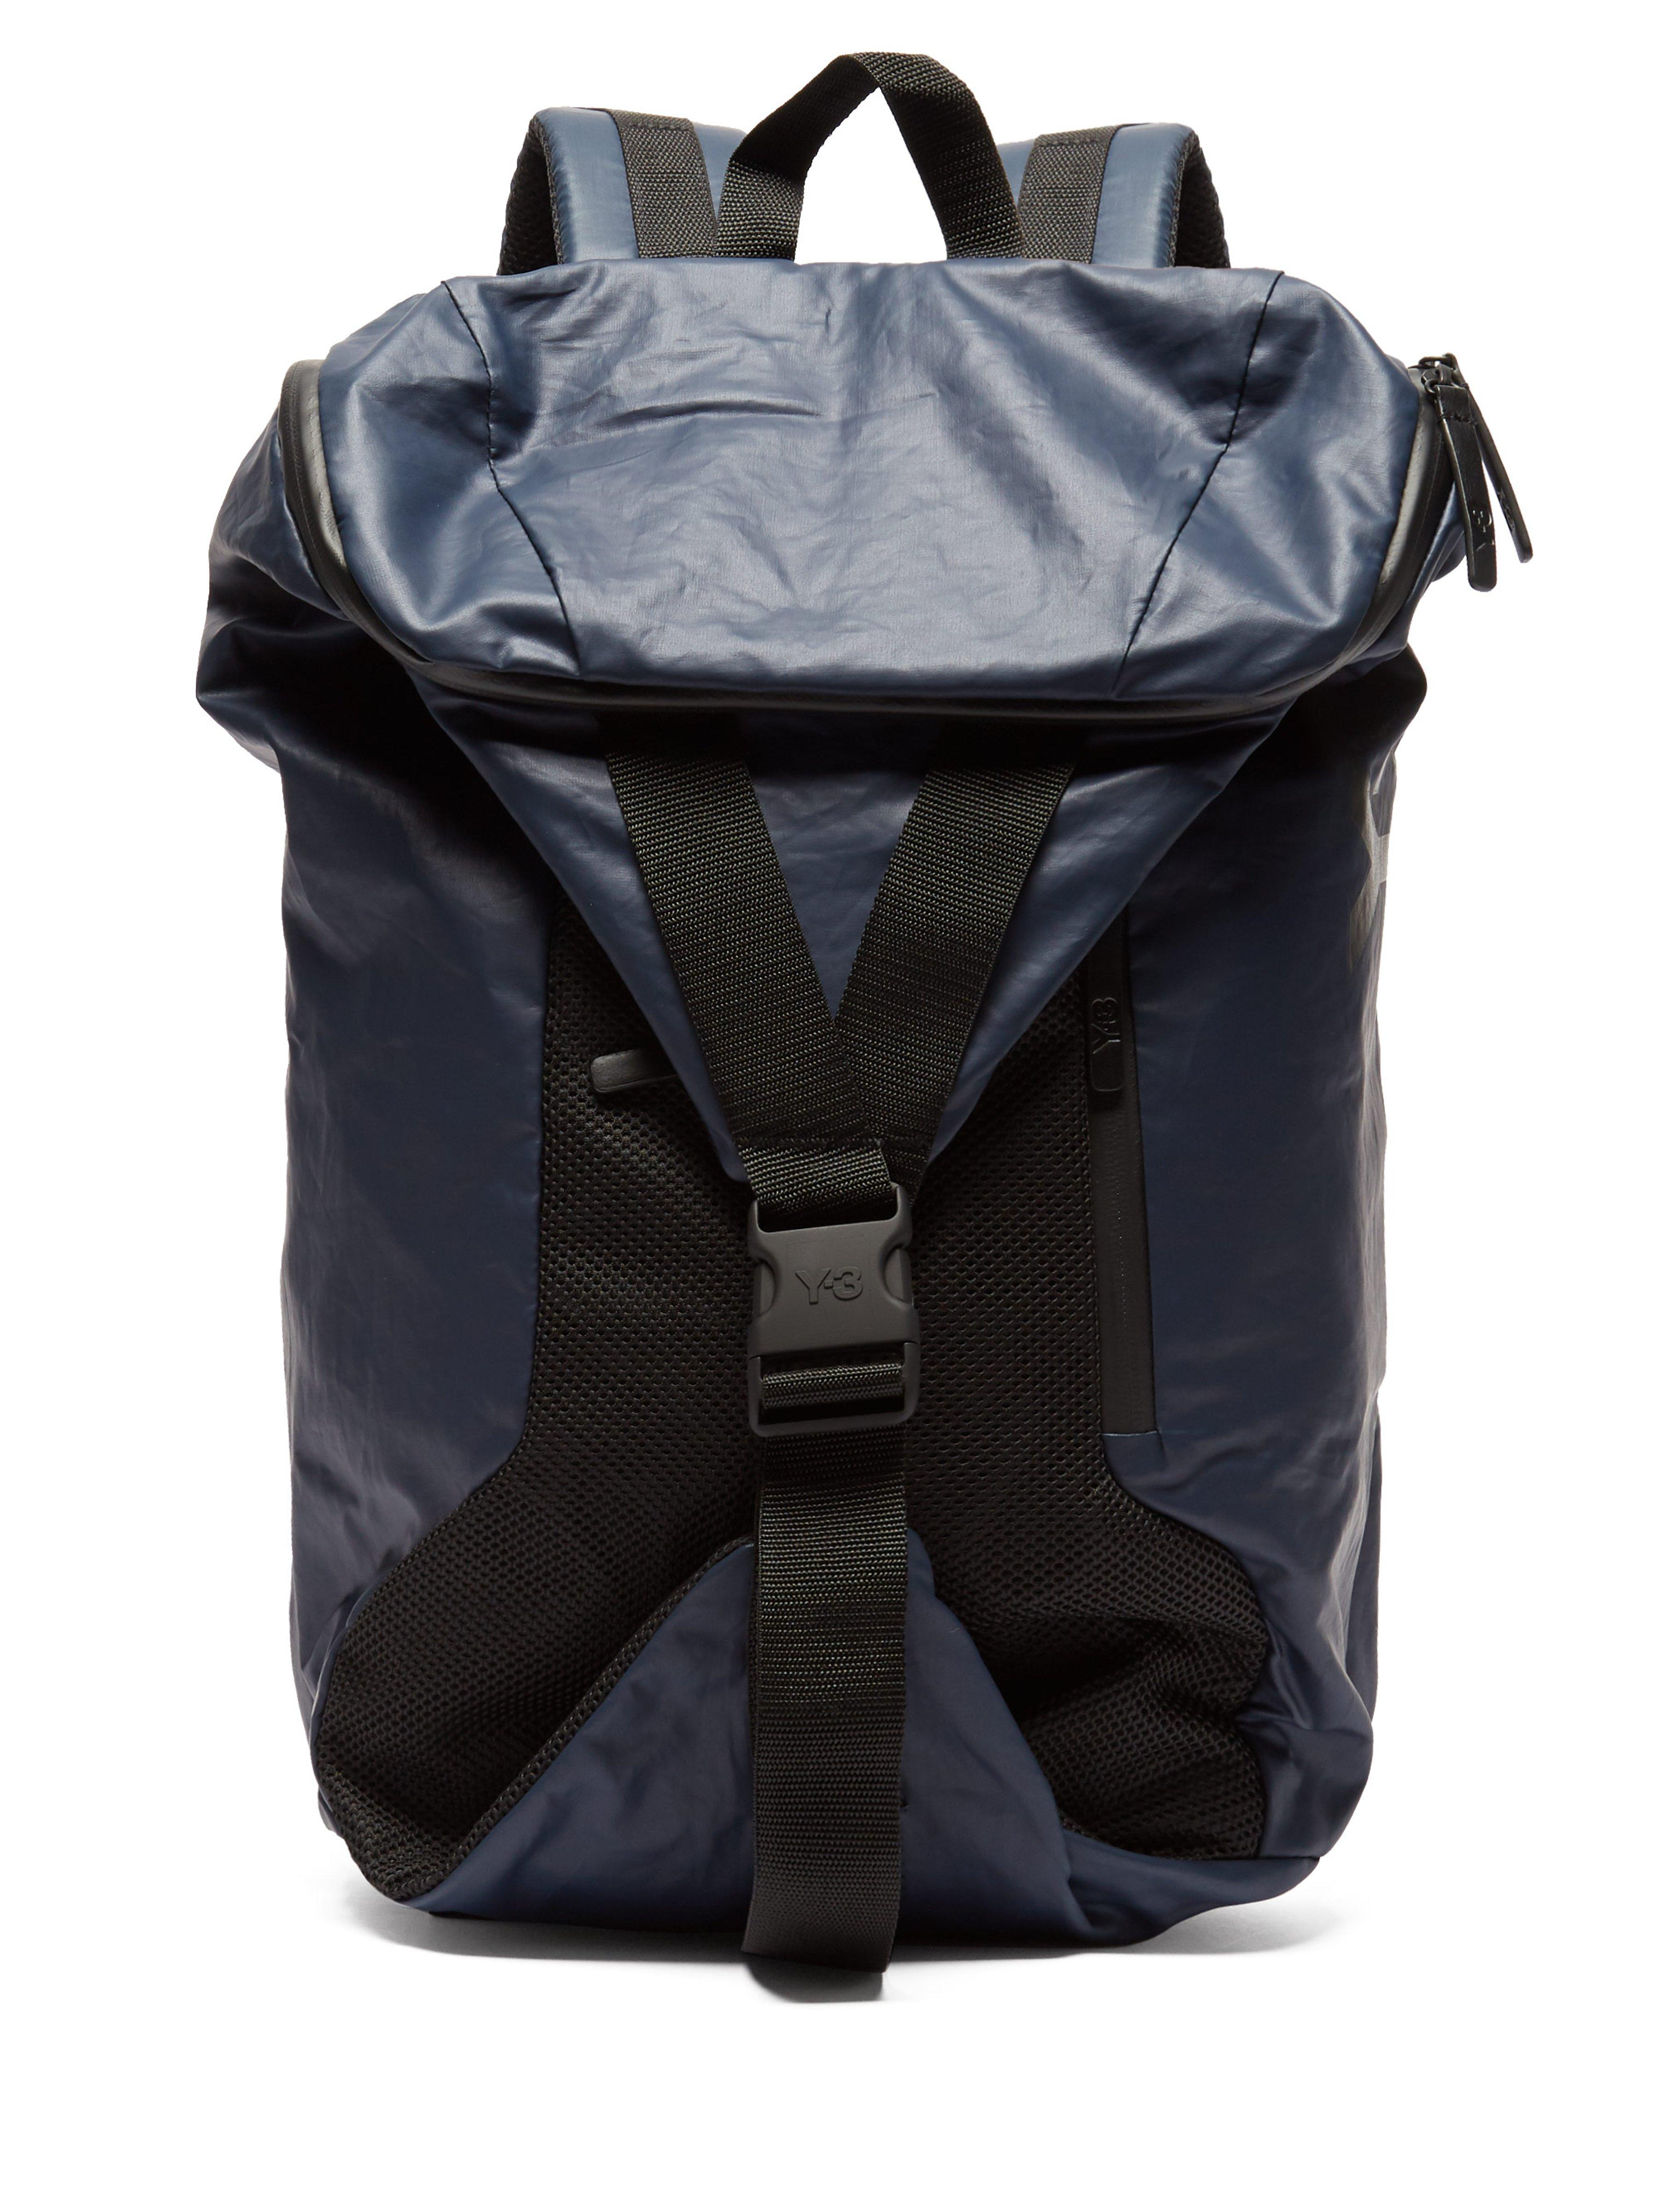 Y-3 Base Backpack in Black for Men - Lyst f202f65bb18aa